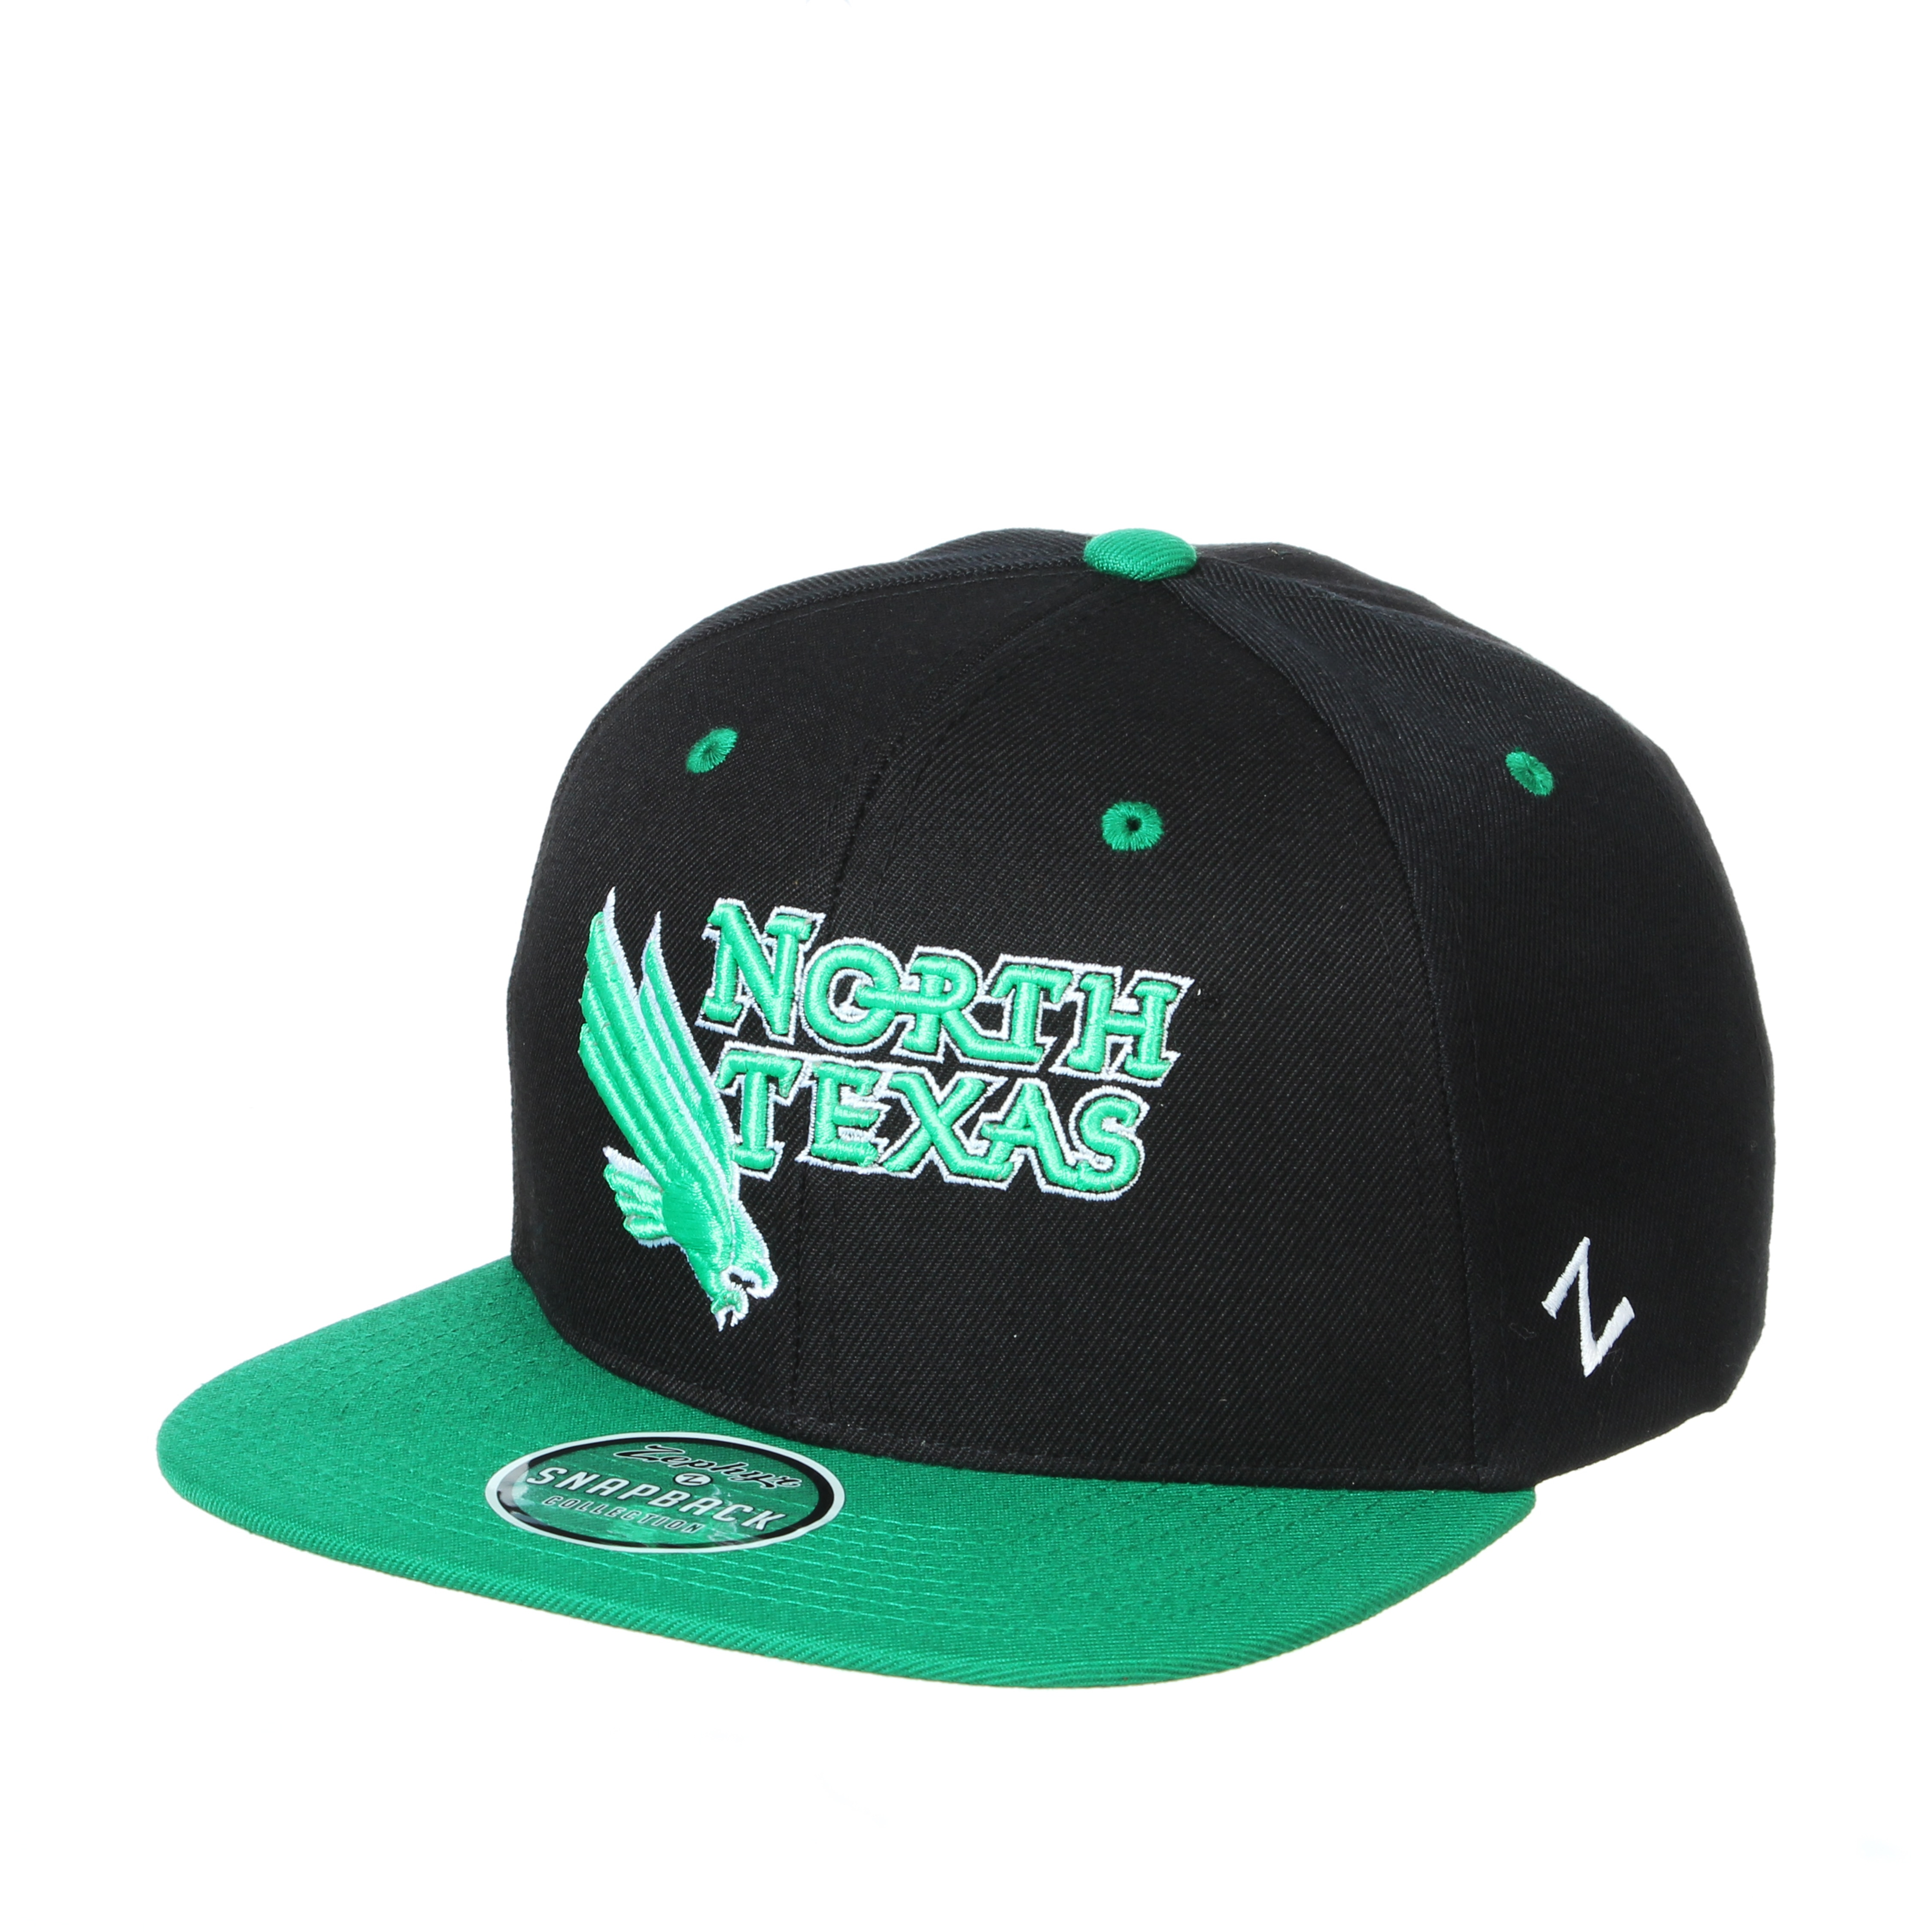 University of North Texas Zephyr Z11 Flat Bill Adjustable Snapback Cap Hat